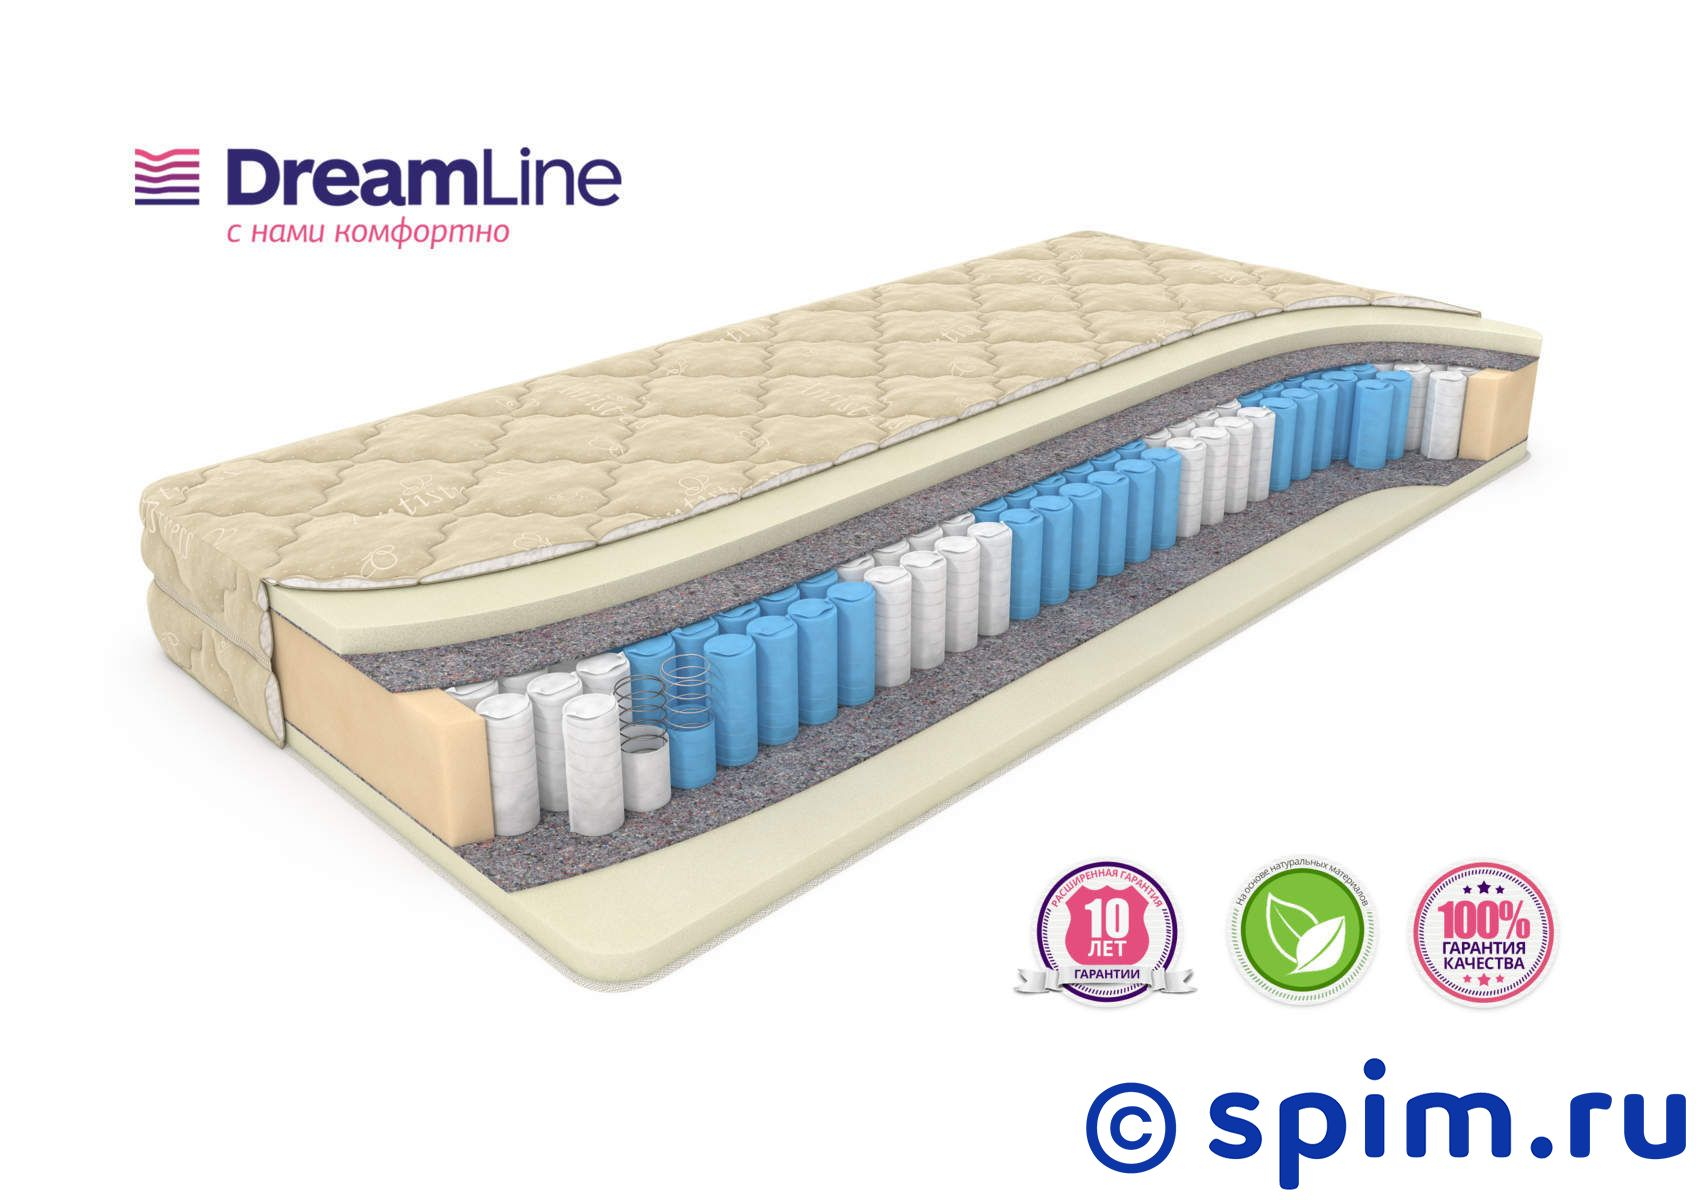 Матрас DreamLine Memory Latex Smart Zone 150х195 см матрас dreamline mix smart zone 120x195